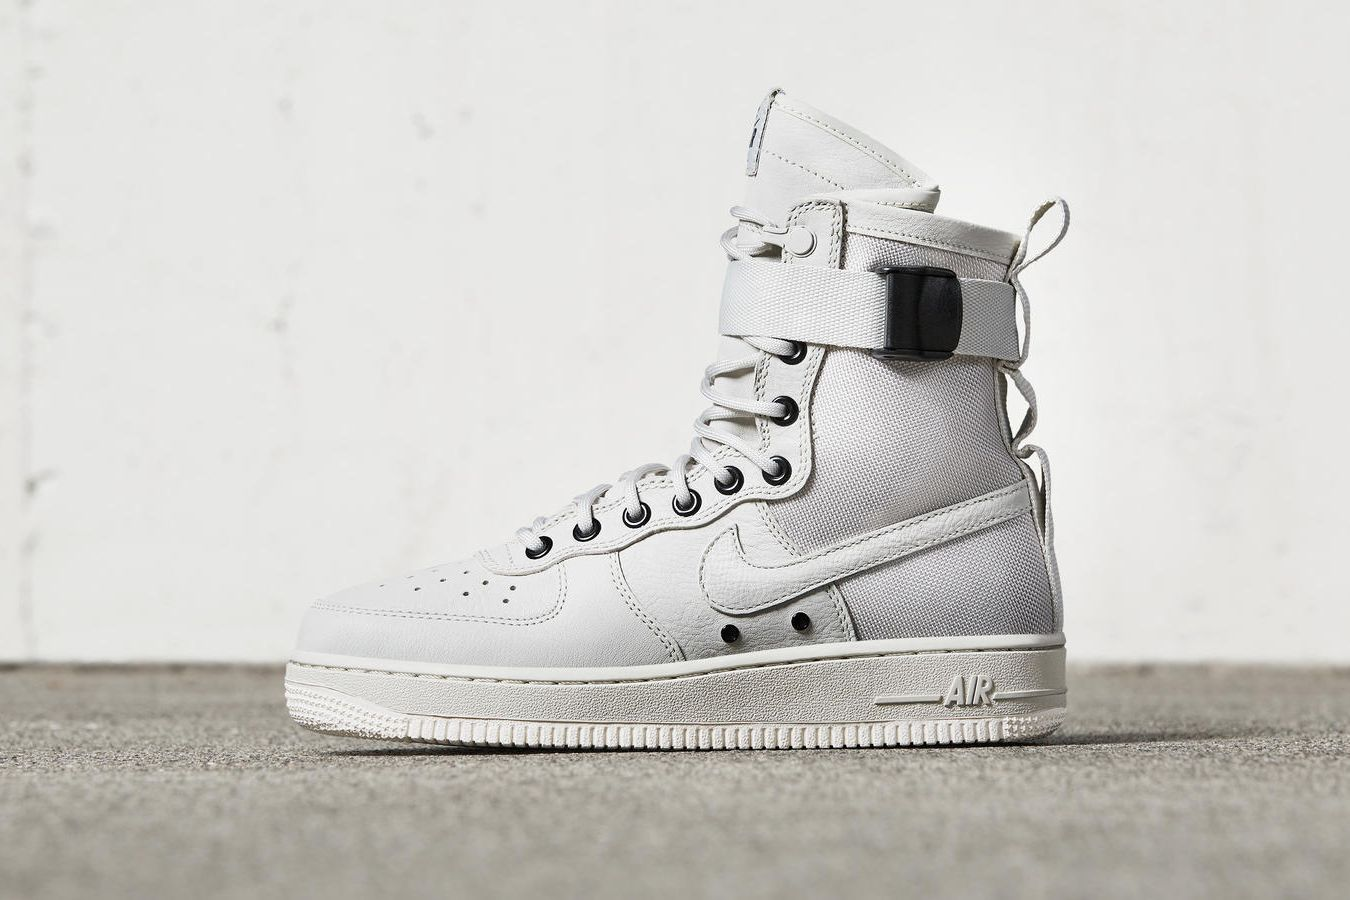 promo code c7825 7ec78 ... Ultraforce Mid Sneaker (Women) The iconic, decades-old Nike Air Force 1  silhouette is getting a special makeover ...